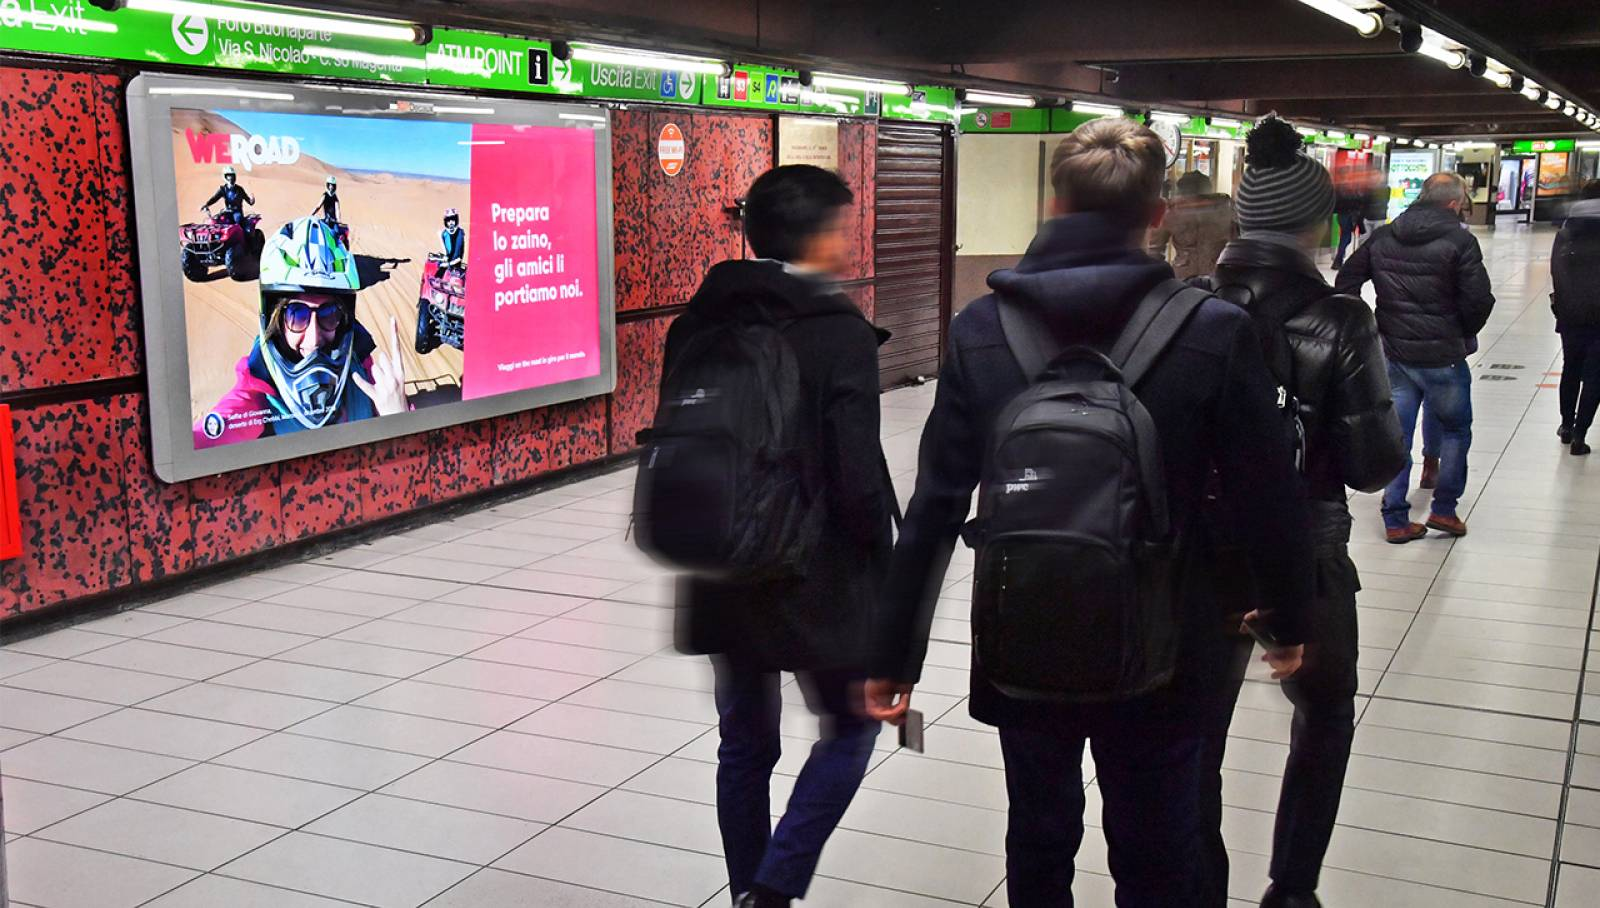 OOH advertising in Milan Landscape Coverage Network IGPDecaux for WeRoad